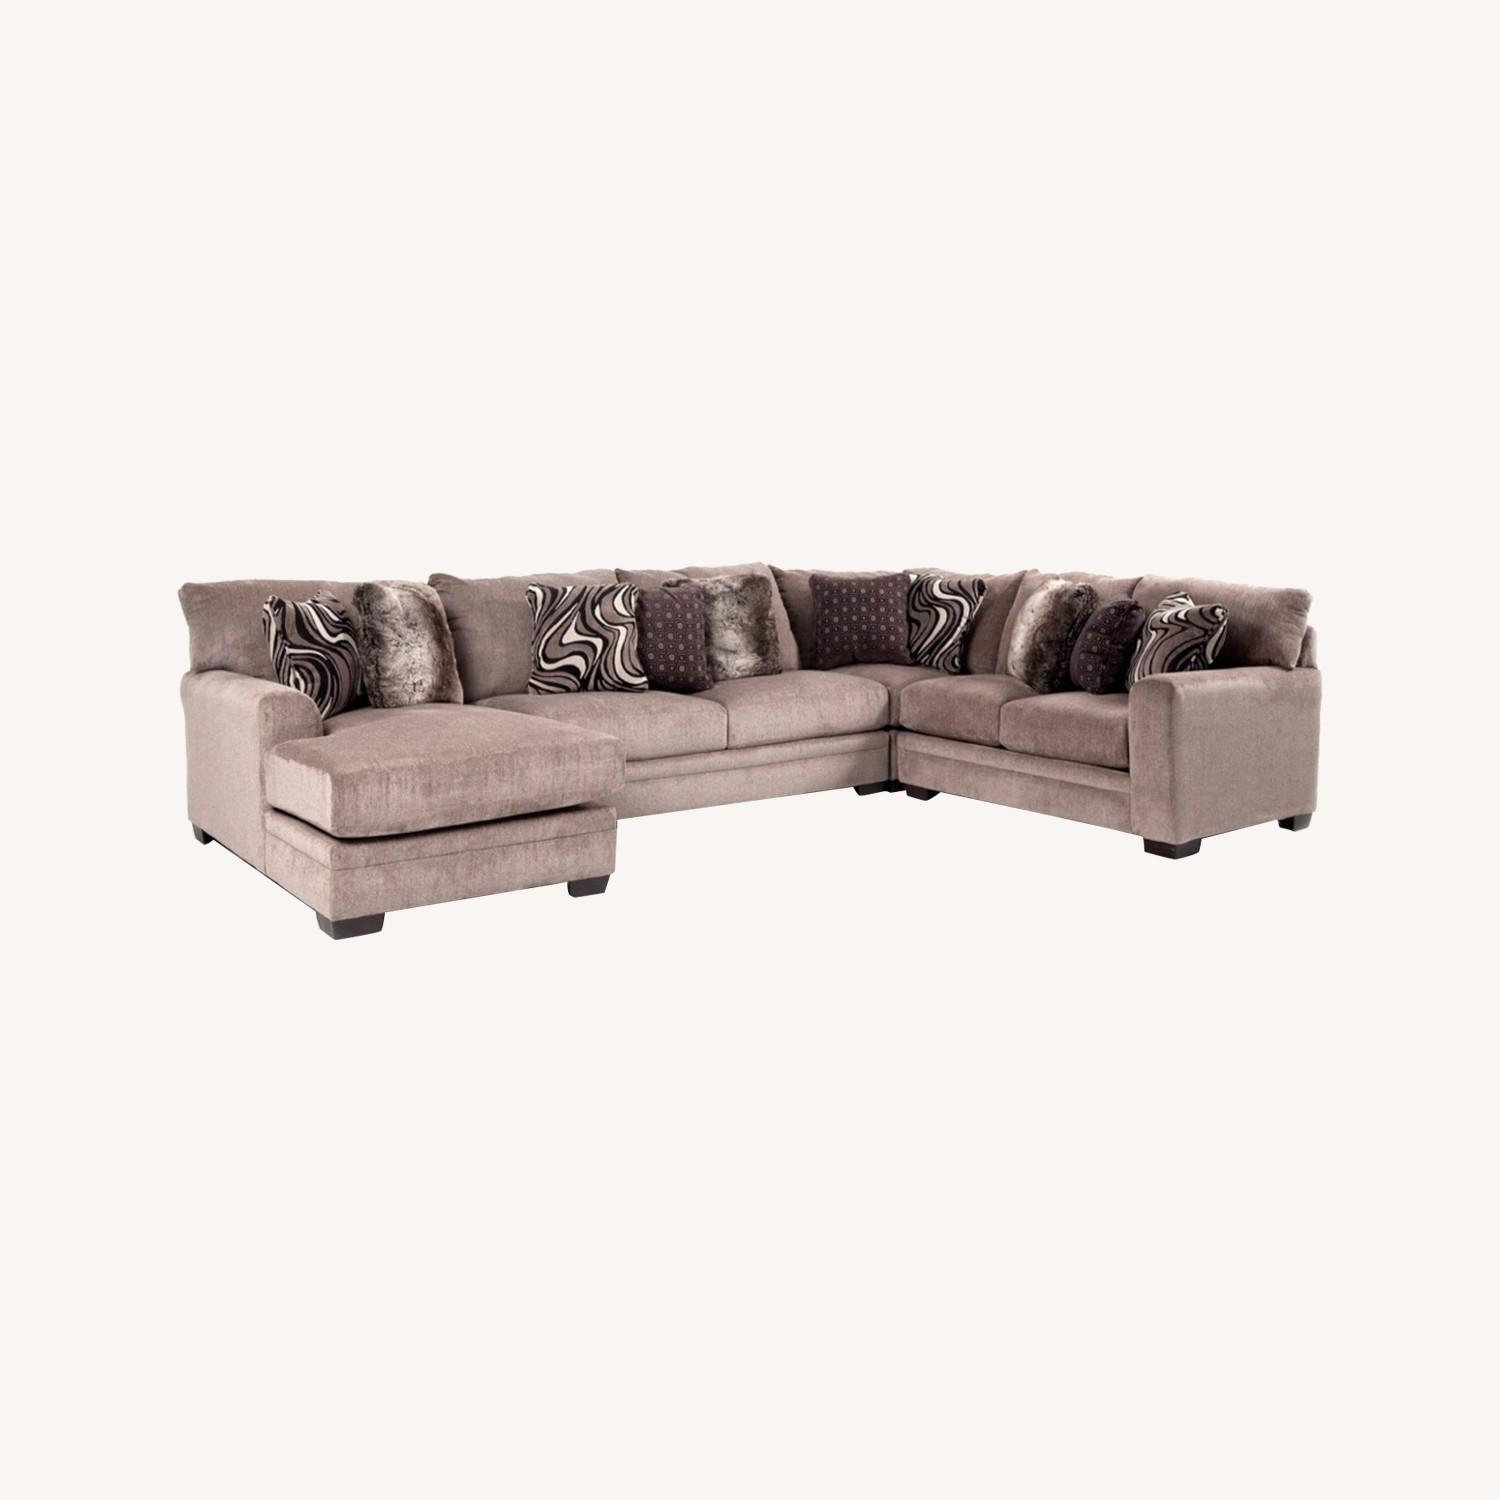 Bob's Discount Furniture Luxe Sectional - image-4